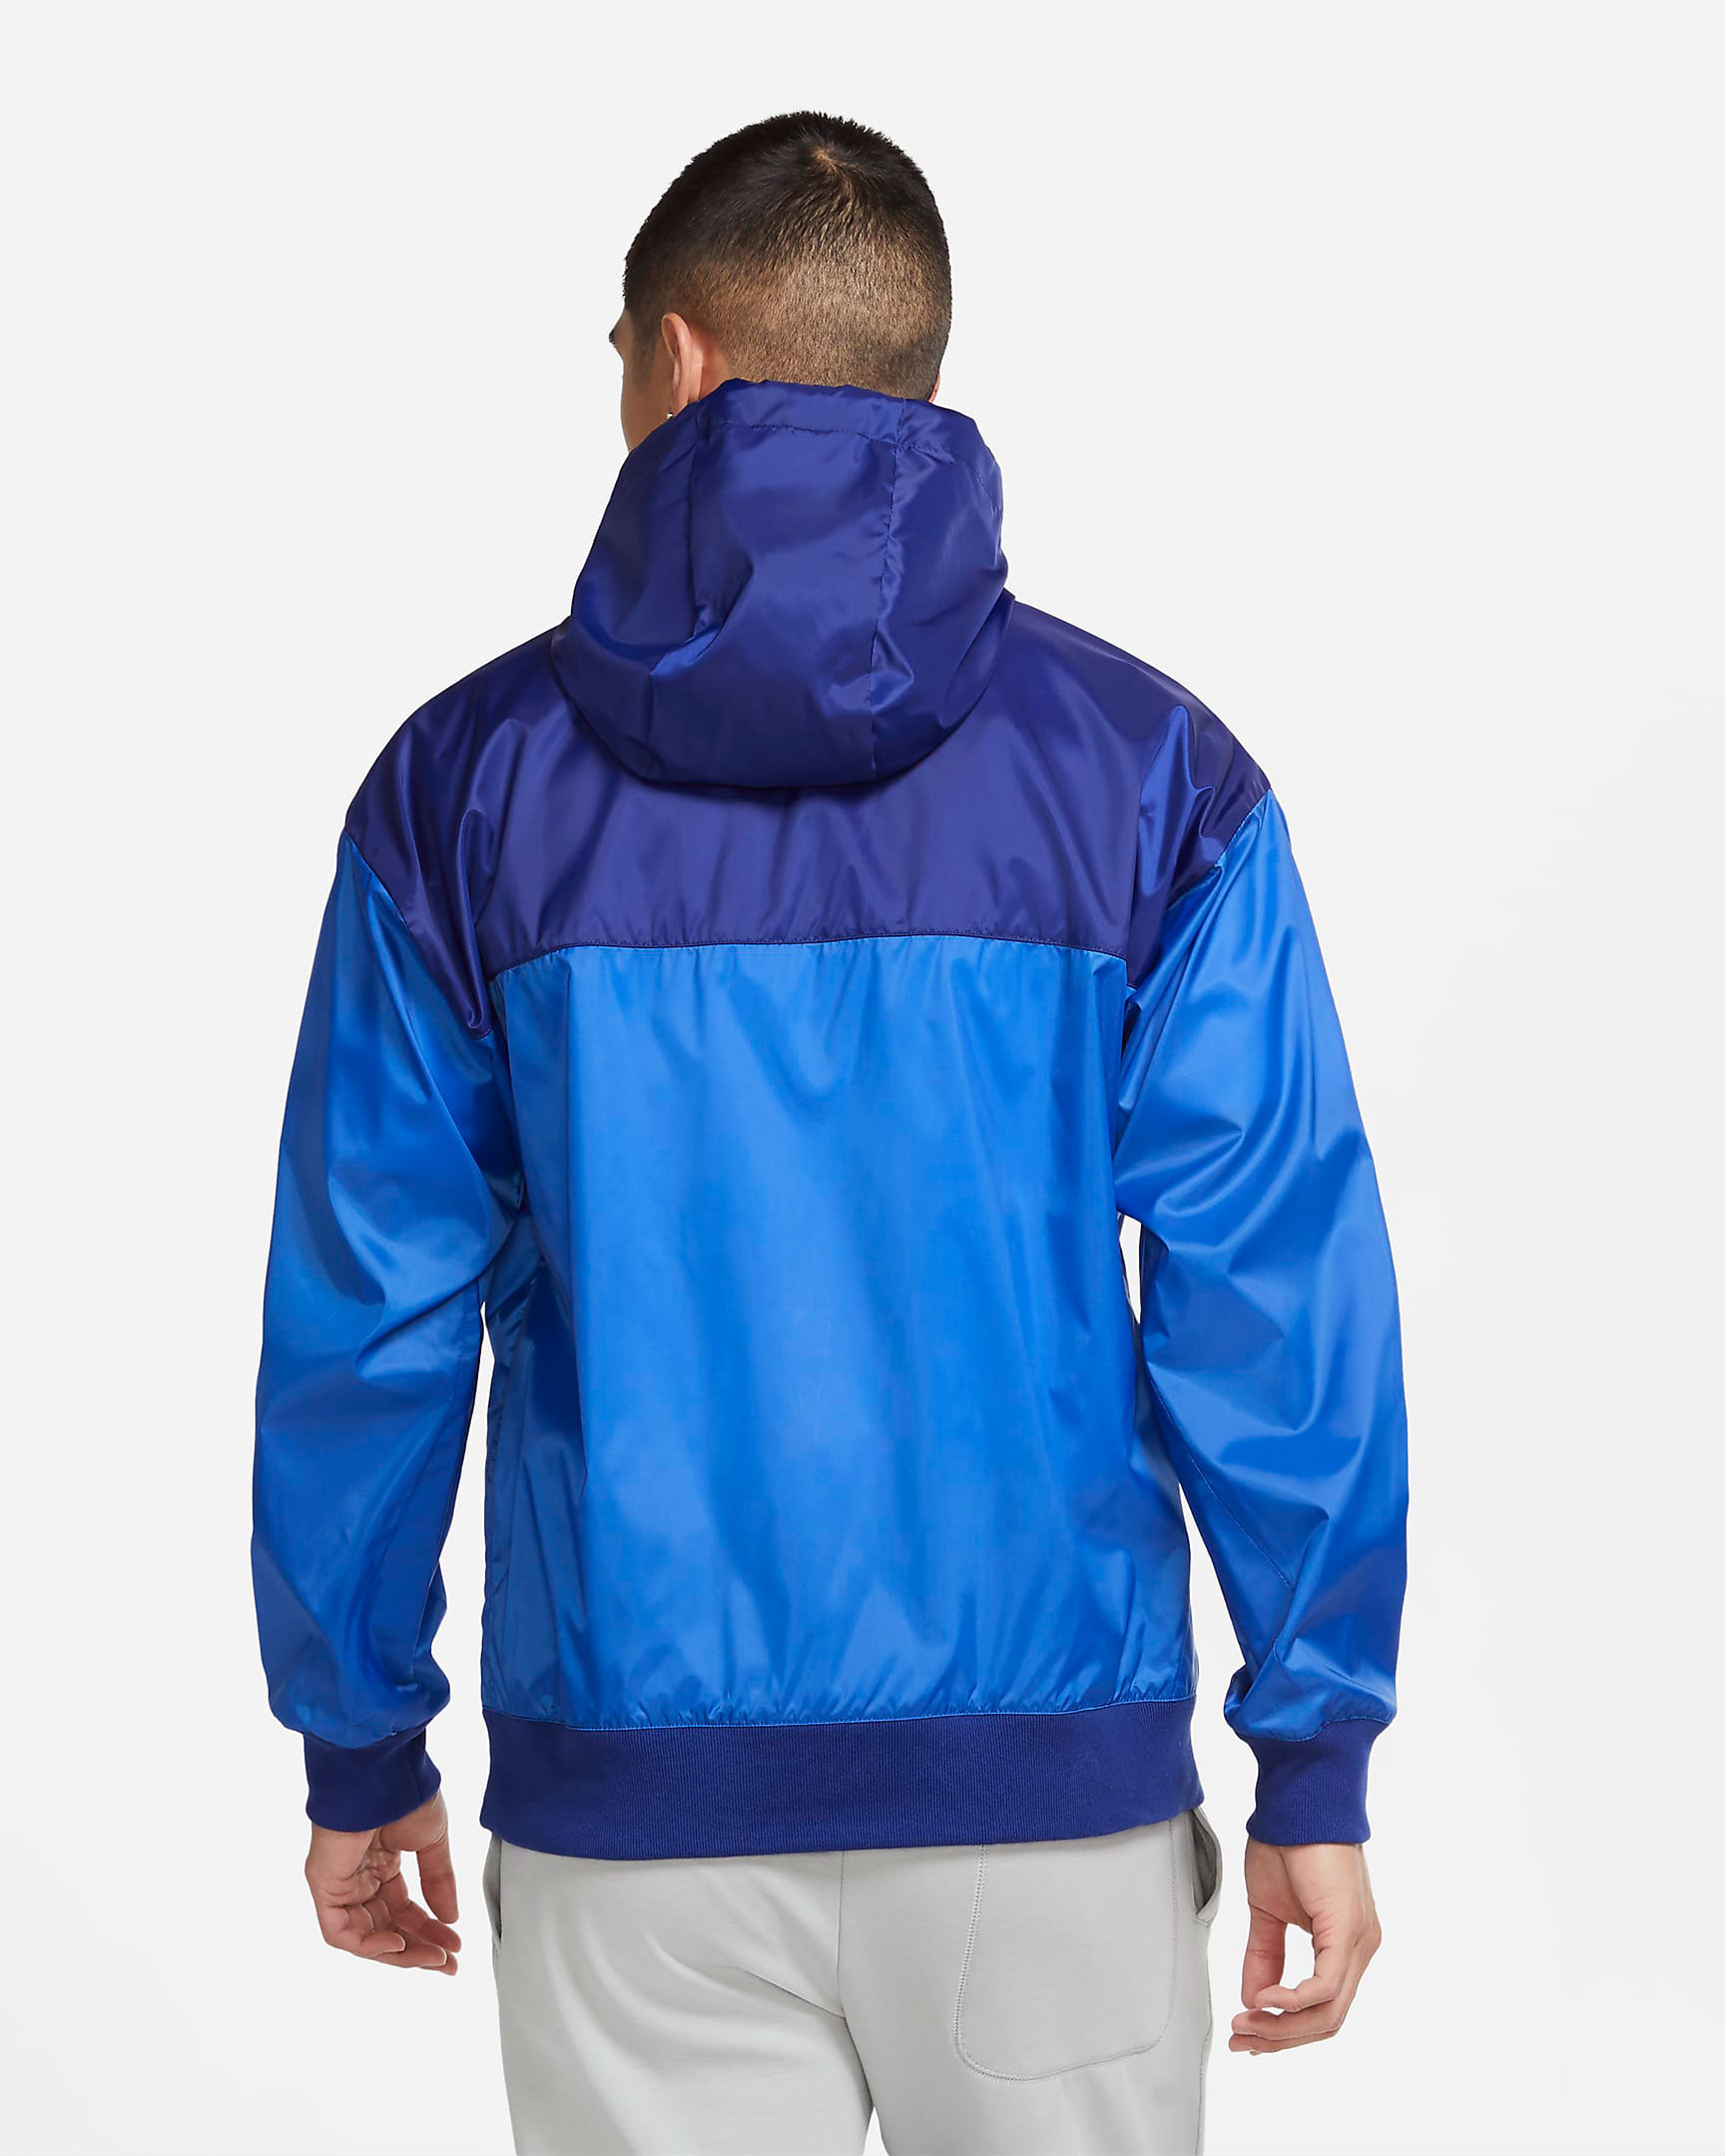 air-jordan-14-hyper-royal-nike-jacket-match-2